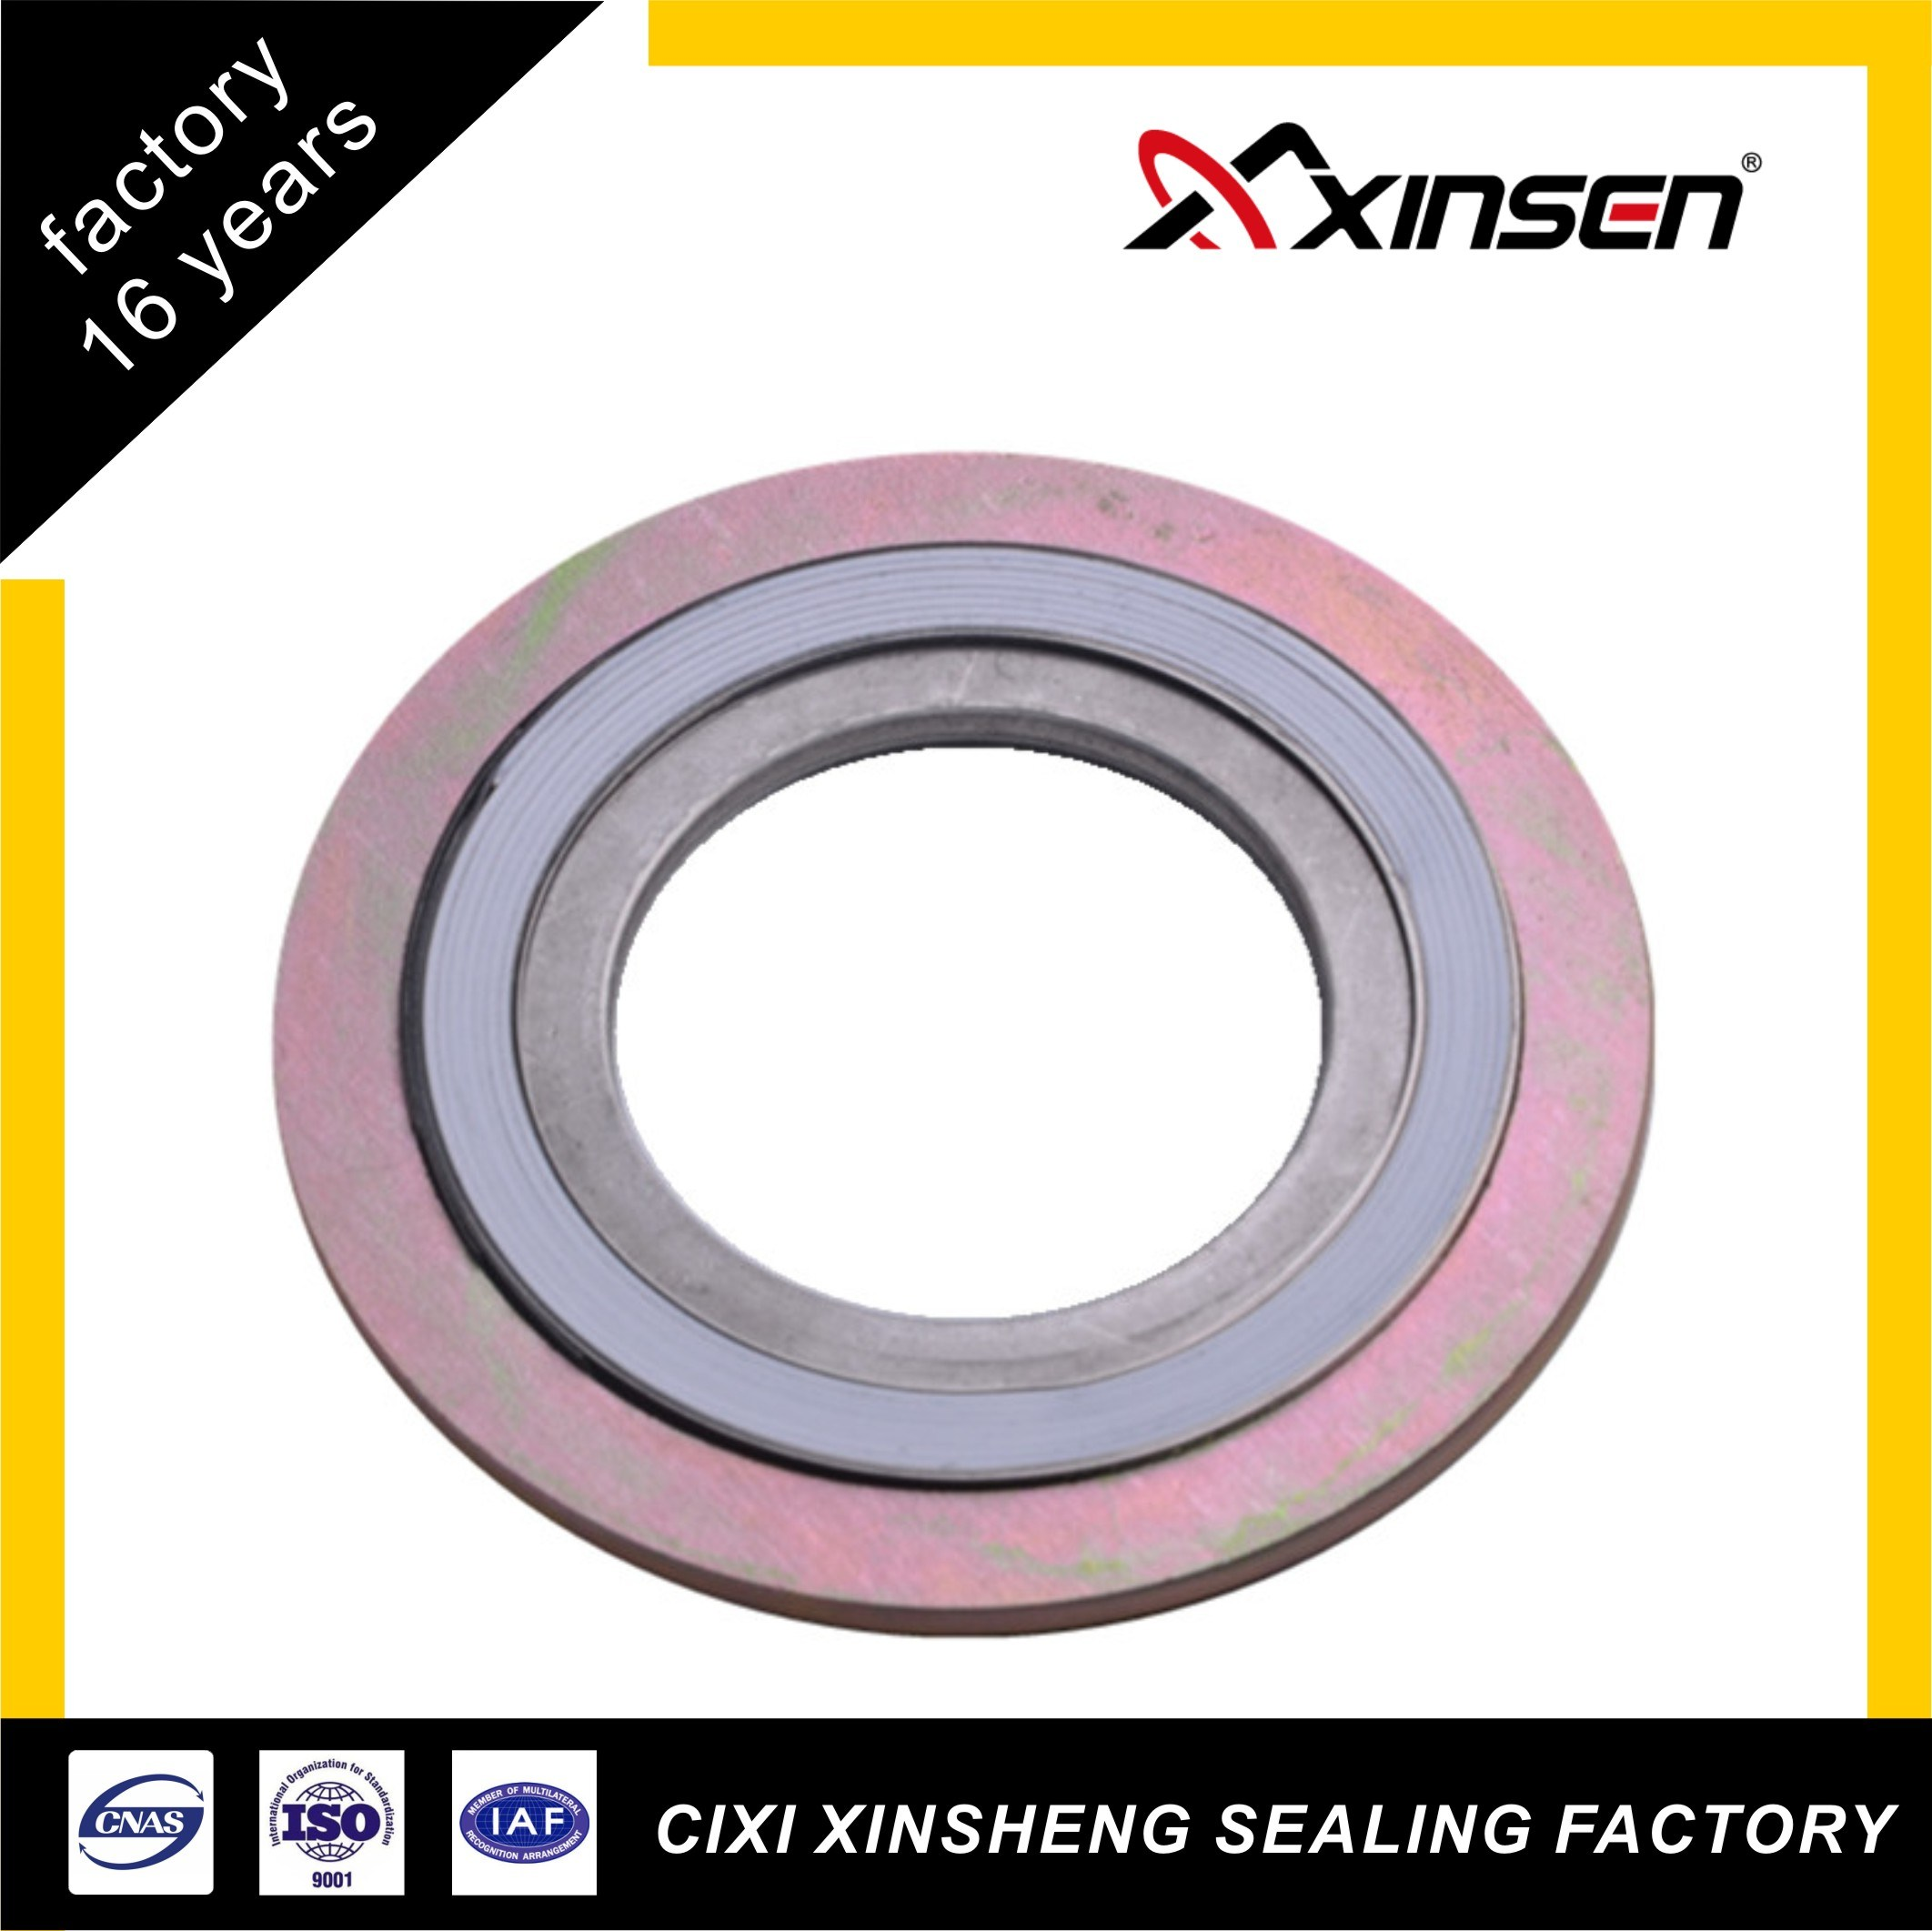 [Hot Item] Ss304 Inner Ring CS Outer Ring PTFE Filler Spiral Wound Gasket  with ASME16 20 Standard